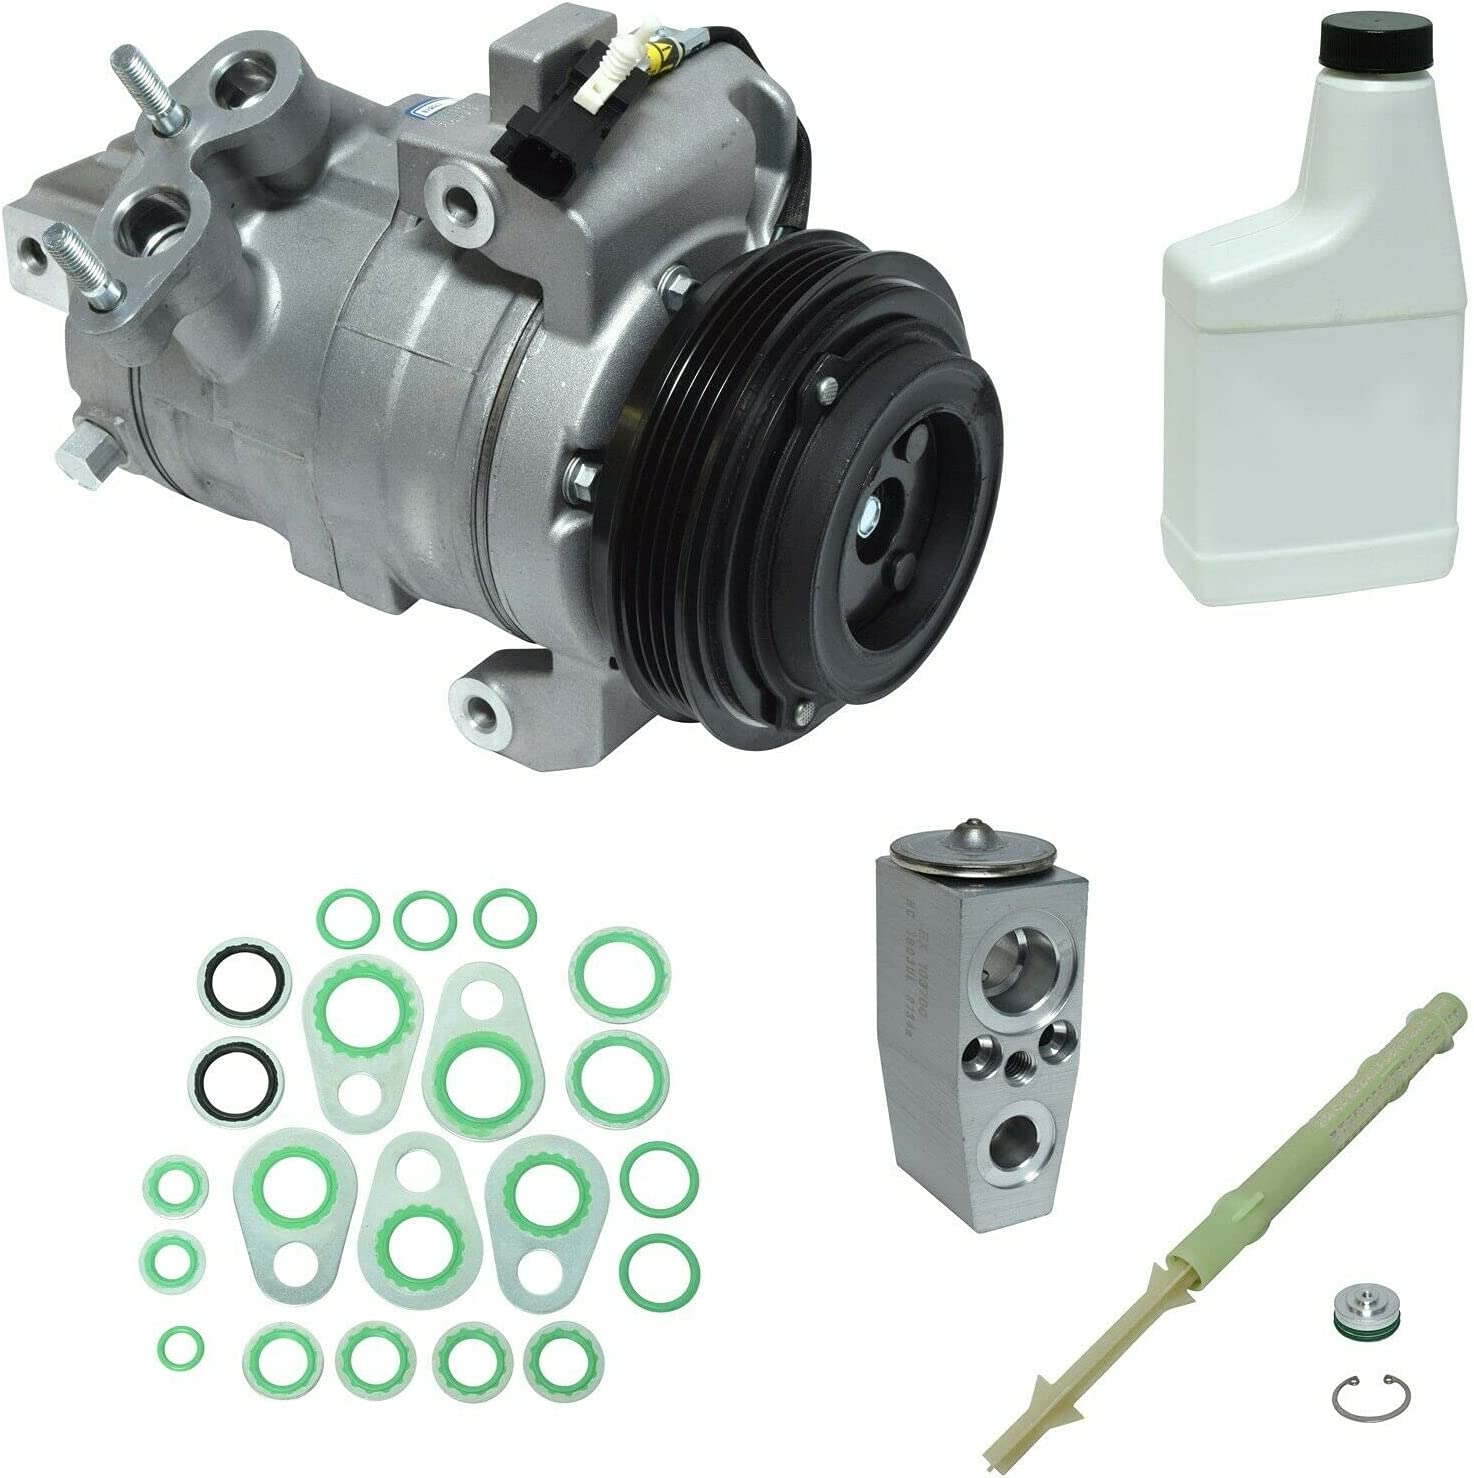 Replacement A Free shipping New C Compressor Max 50% OFF Kit Component and